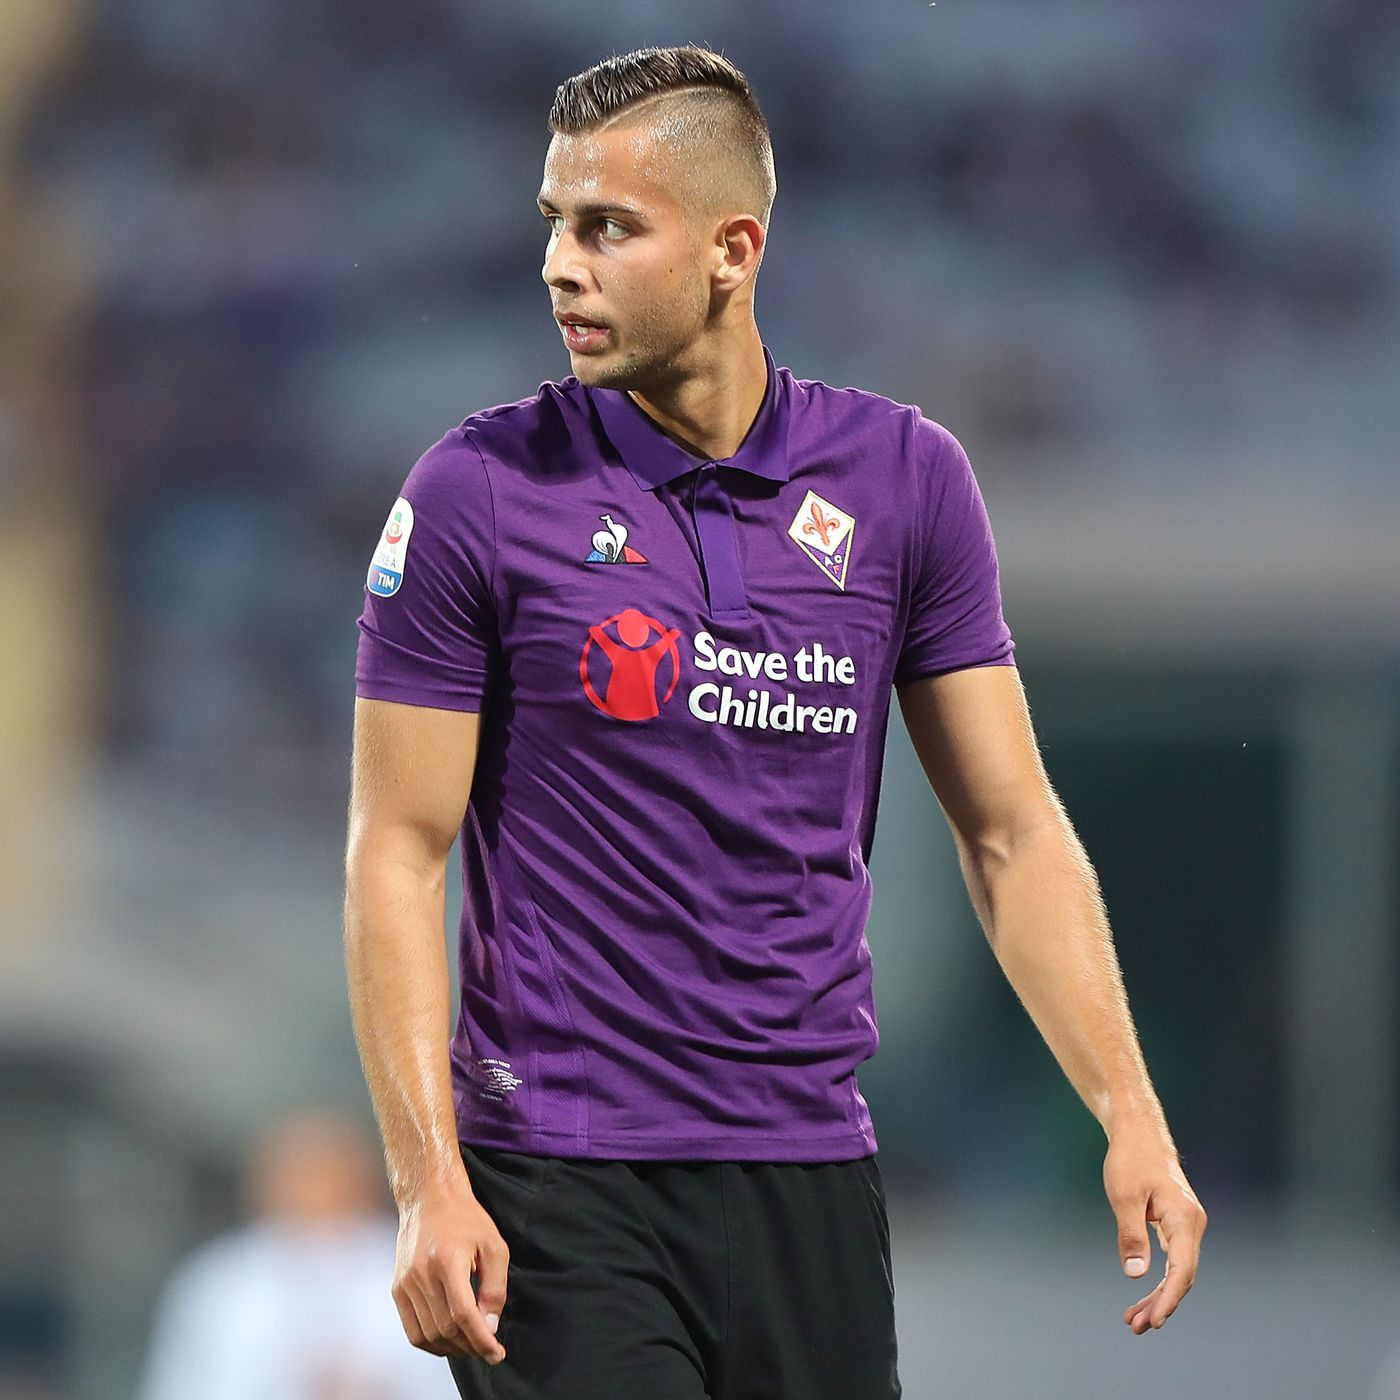 Fiorentina 21-0 Val di Fassa: 3 things we learned - Viola Nation